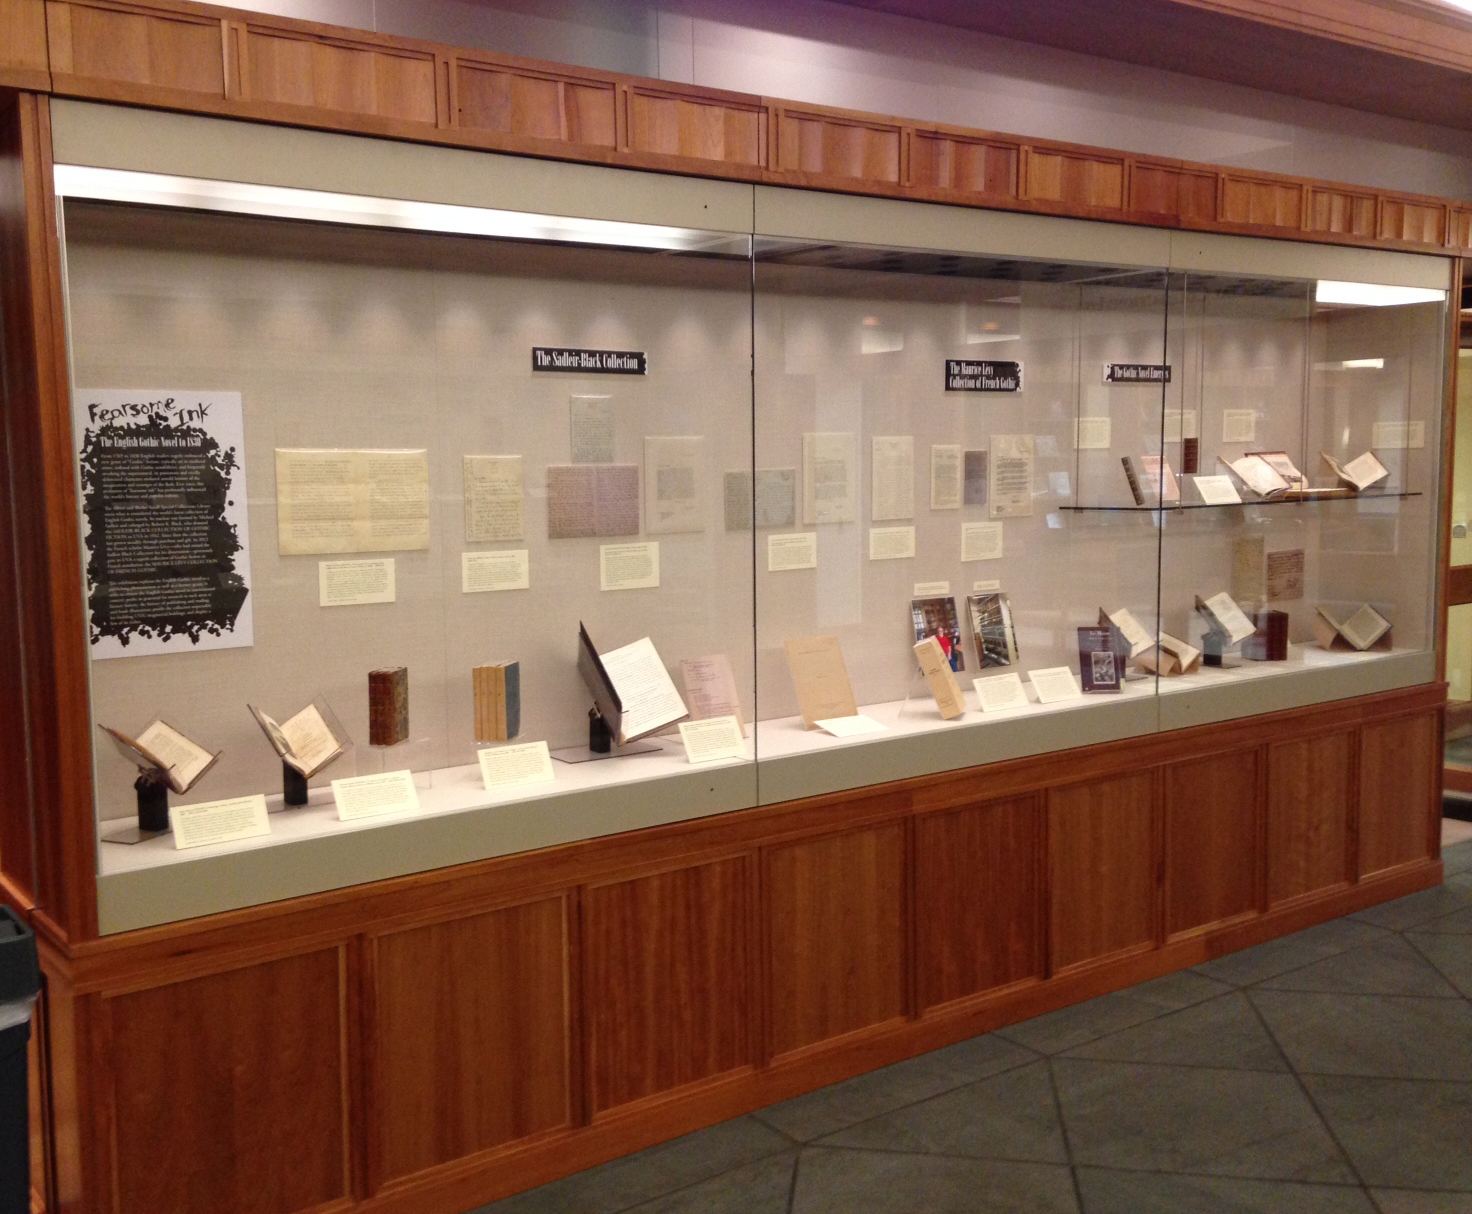 "Part of the exhibition, ""Fearsome Ink: The English Gothic Novel to 1830,"" on view through Mat 28."